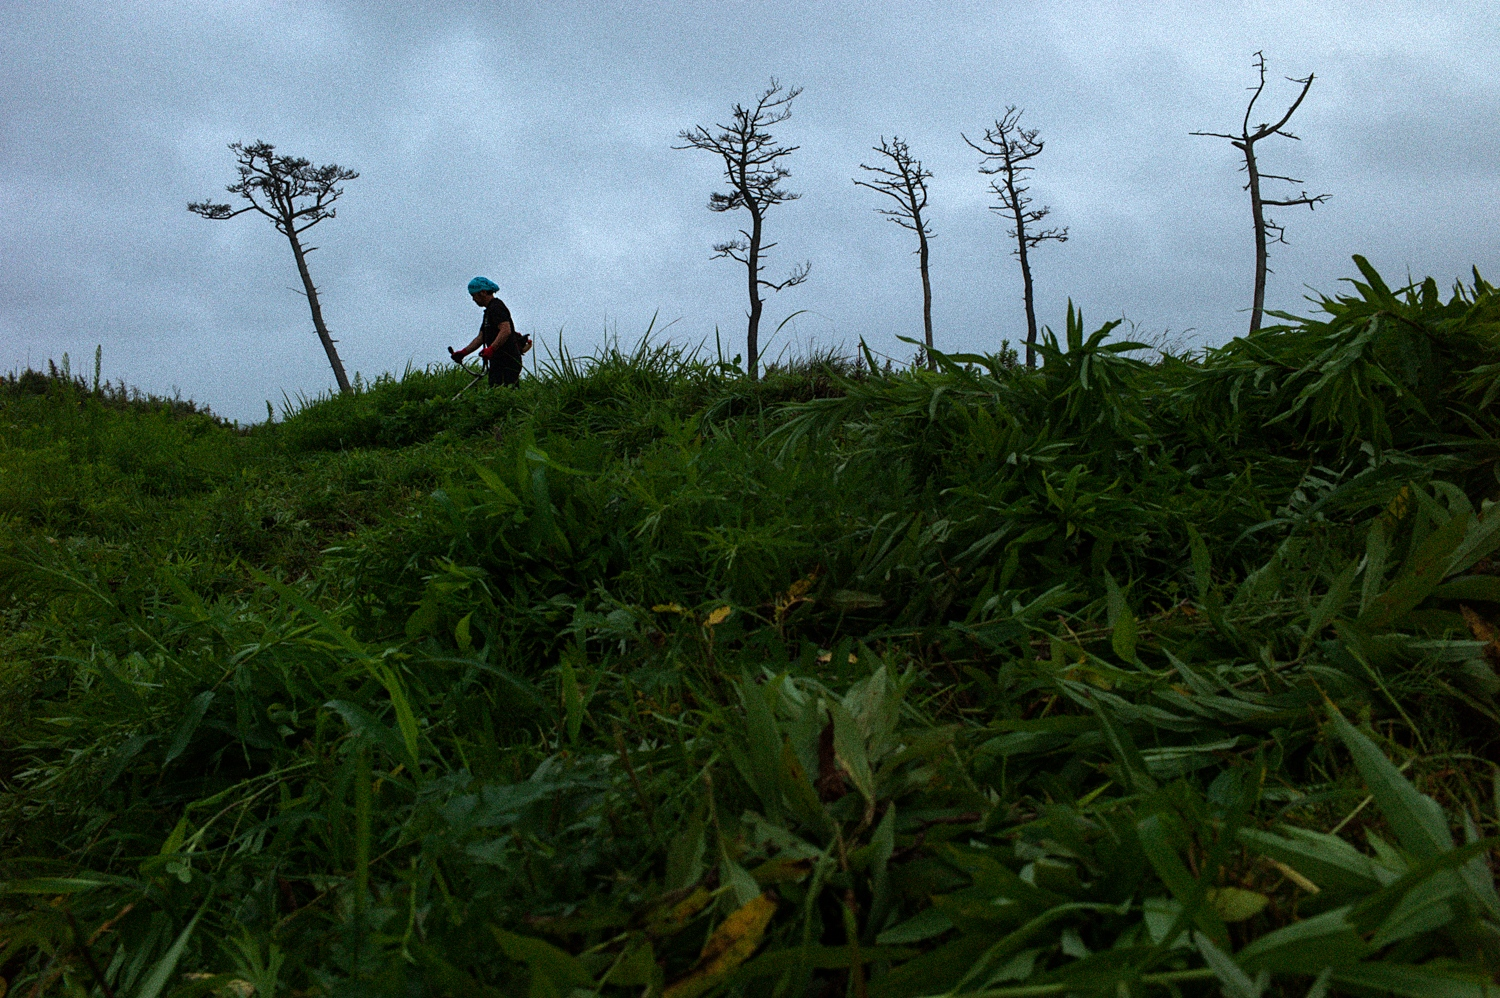 Norio Kimura(52) is clearing out weeds at his farmland in Okuma town. His former home is located inside the exclusion zone in Fukushima.